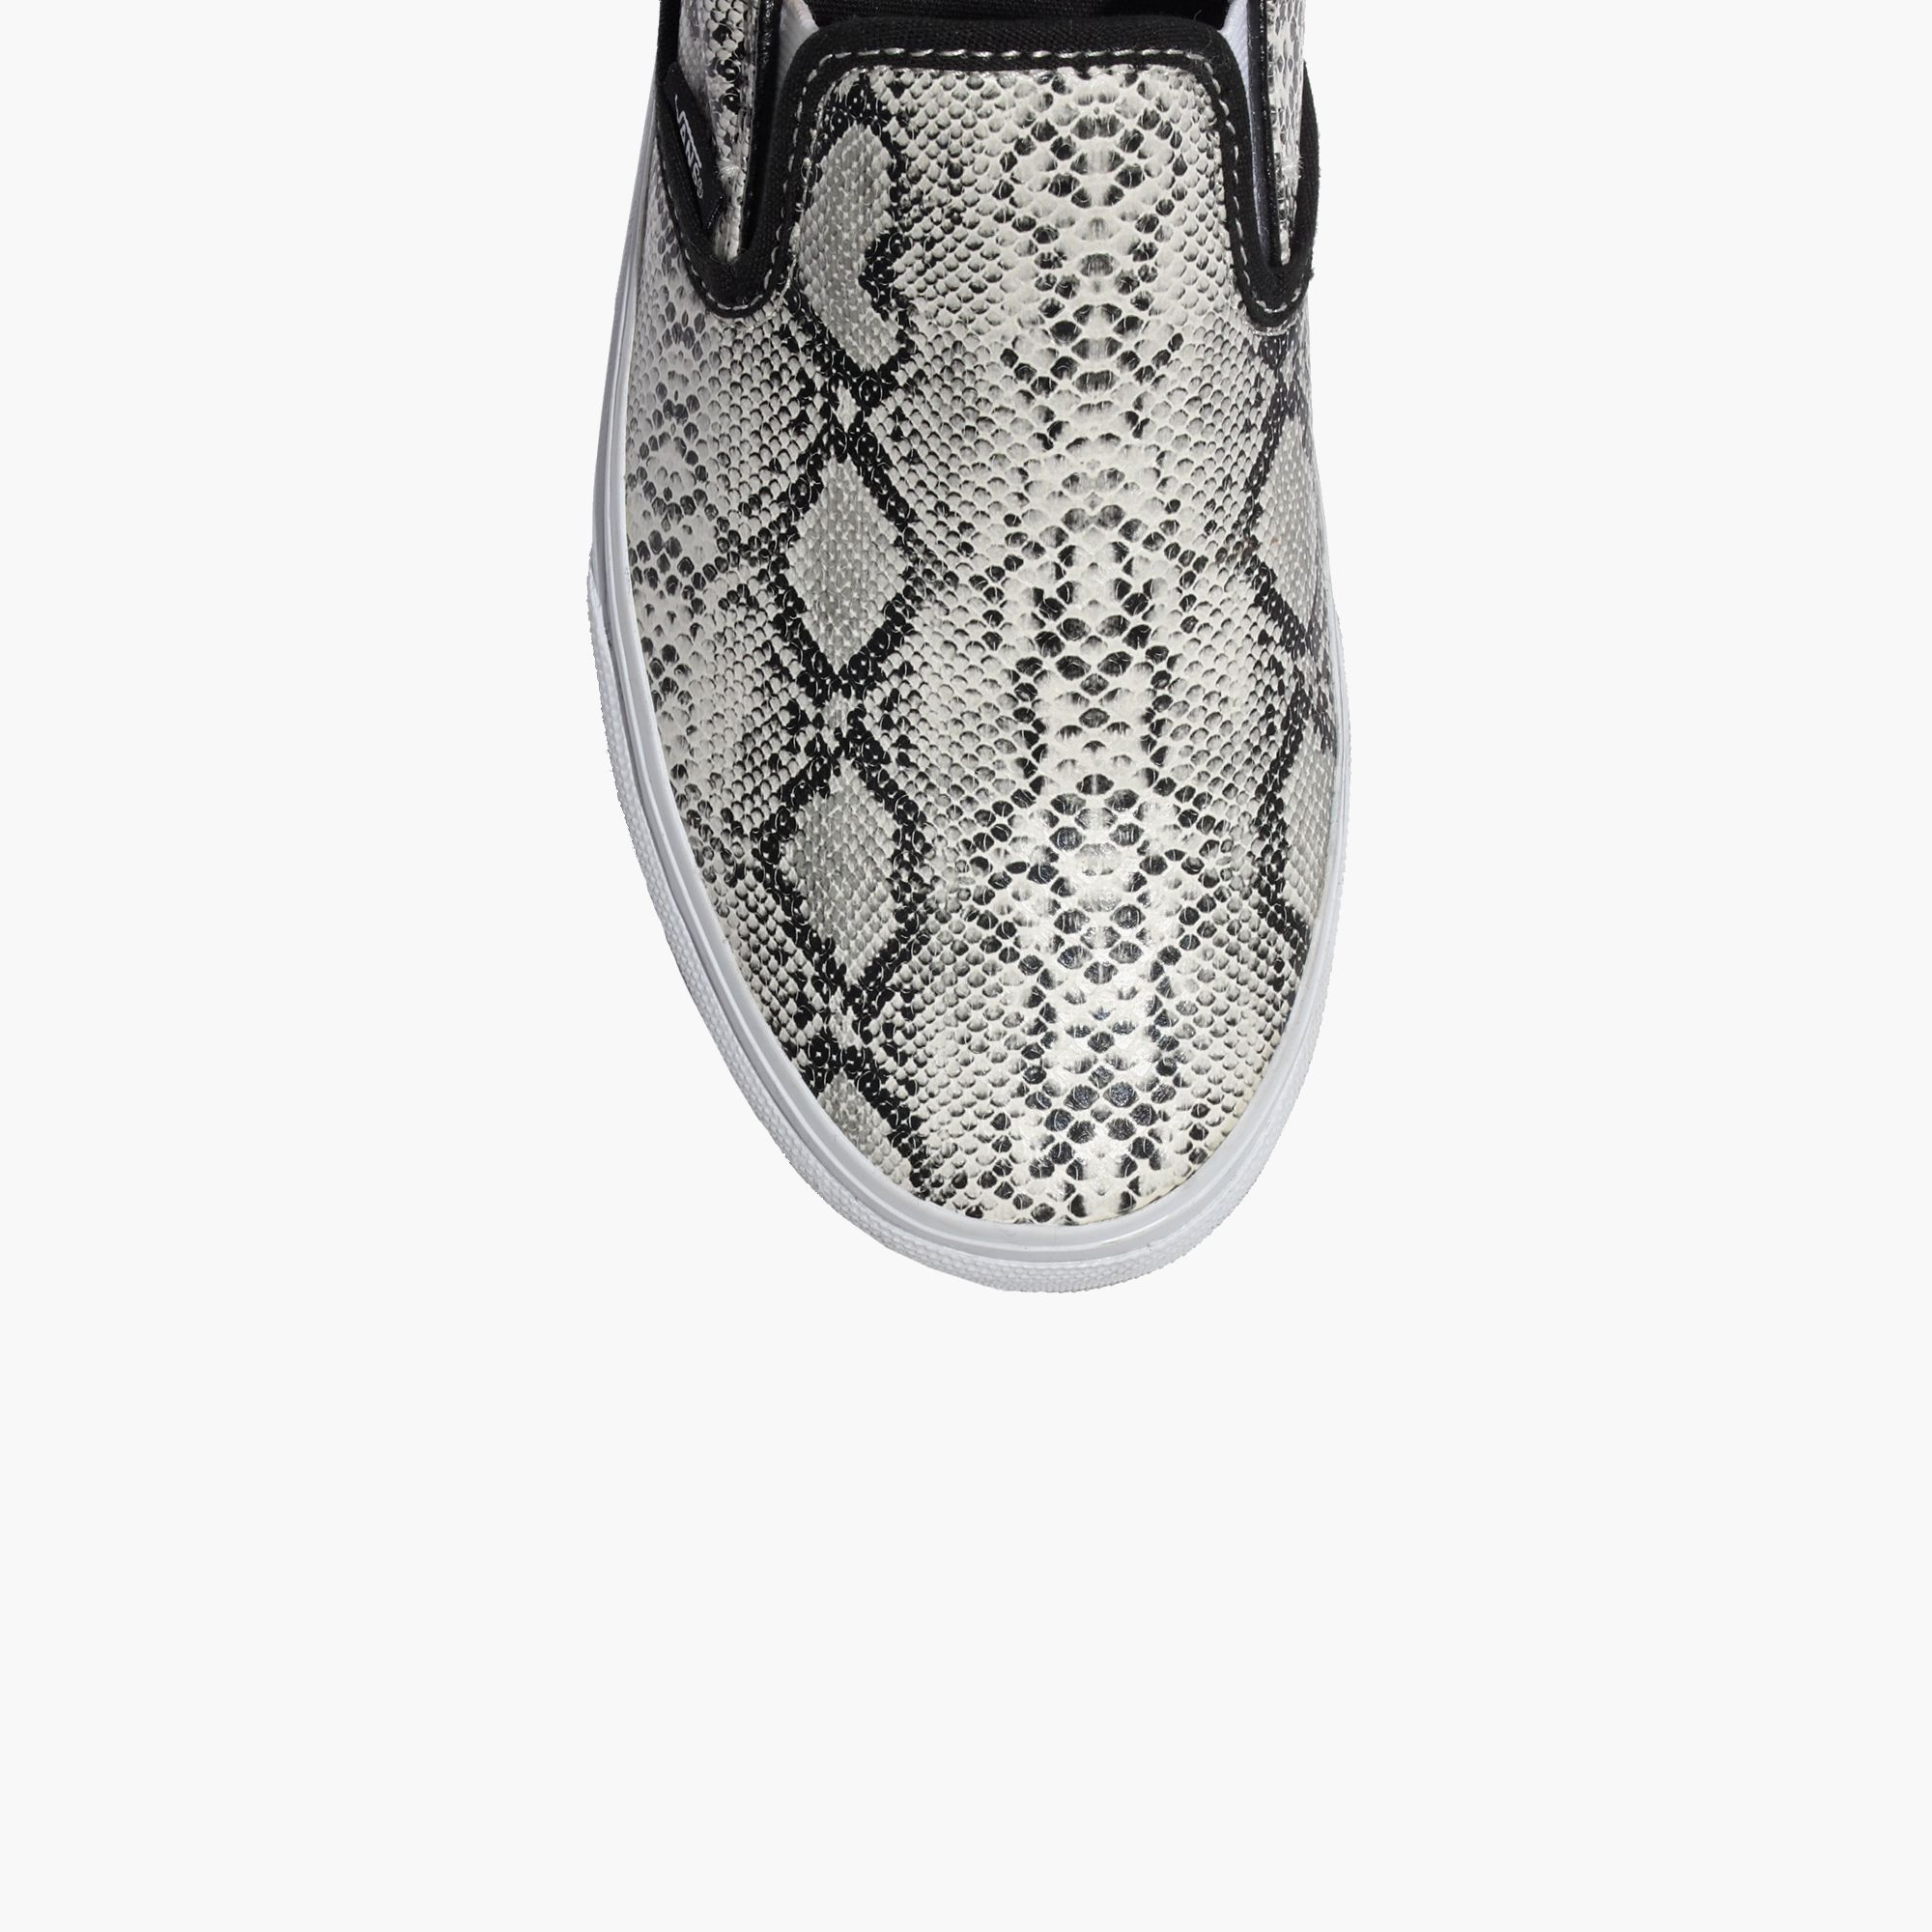 Lyst - Madewell Vans® Classic Slip-ons In Snake Print faa728ae3